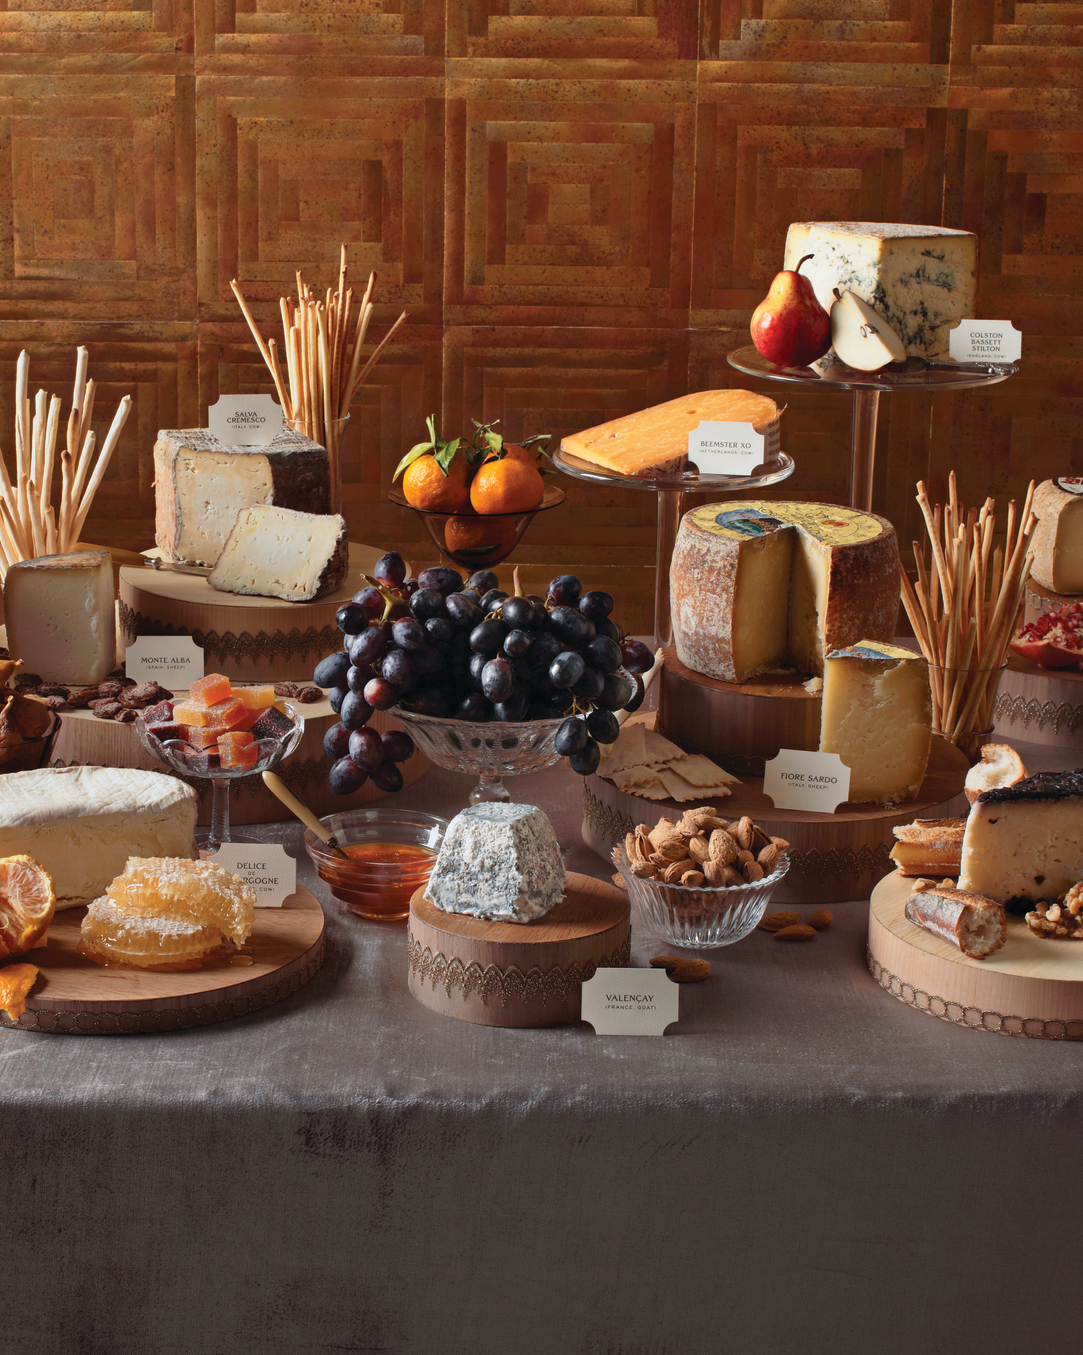 cheese-display-md108850.jpg